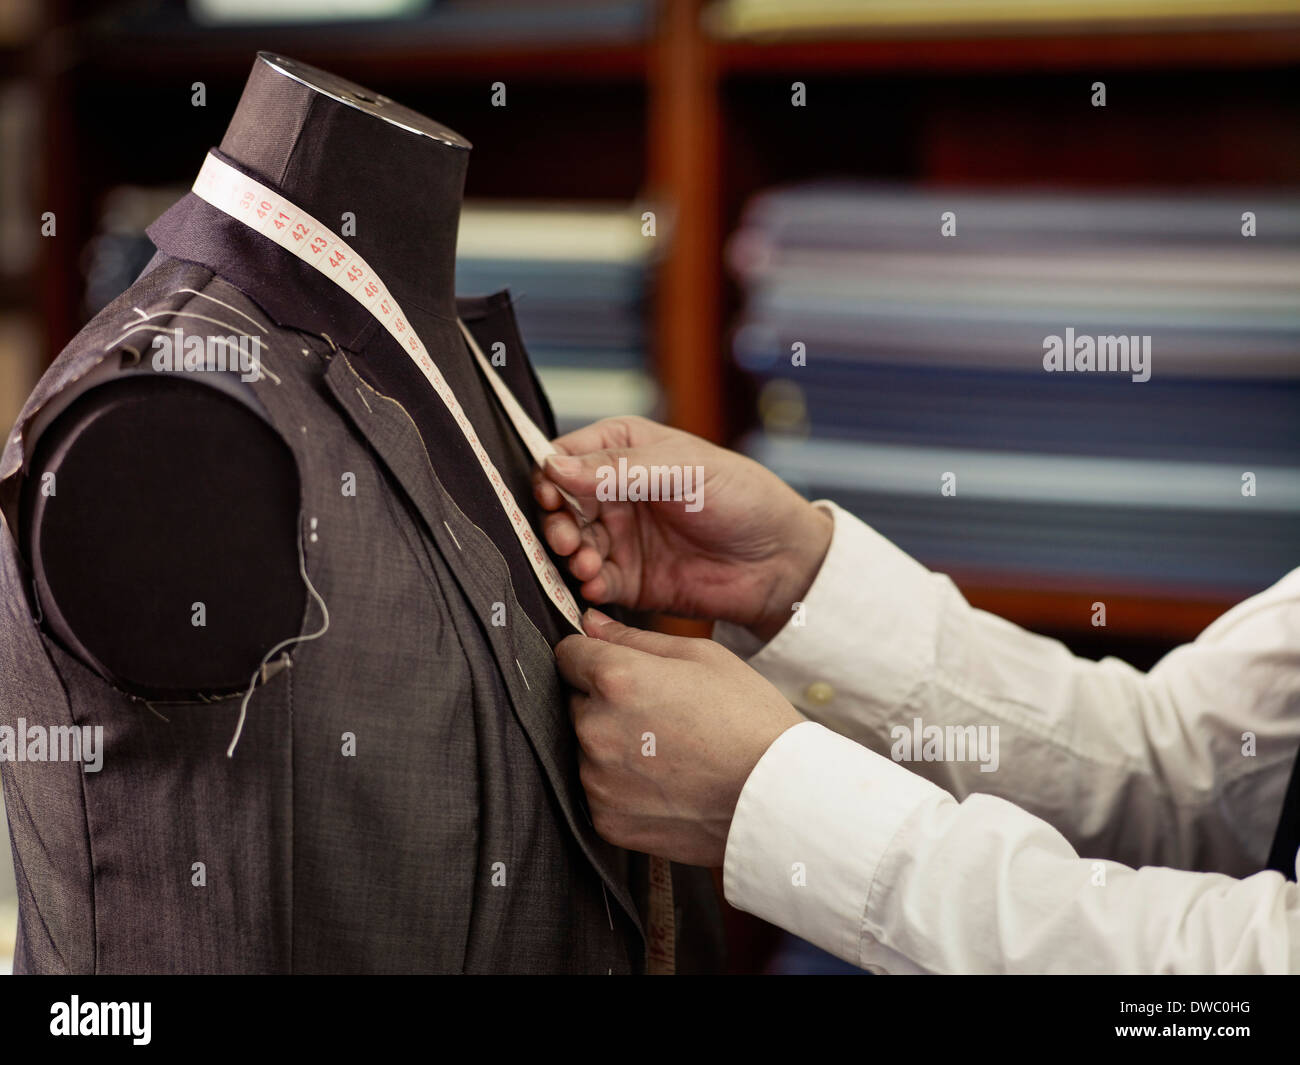 Tailor measuring garment in traditional tailors shop - Stock Image